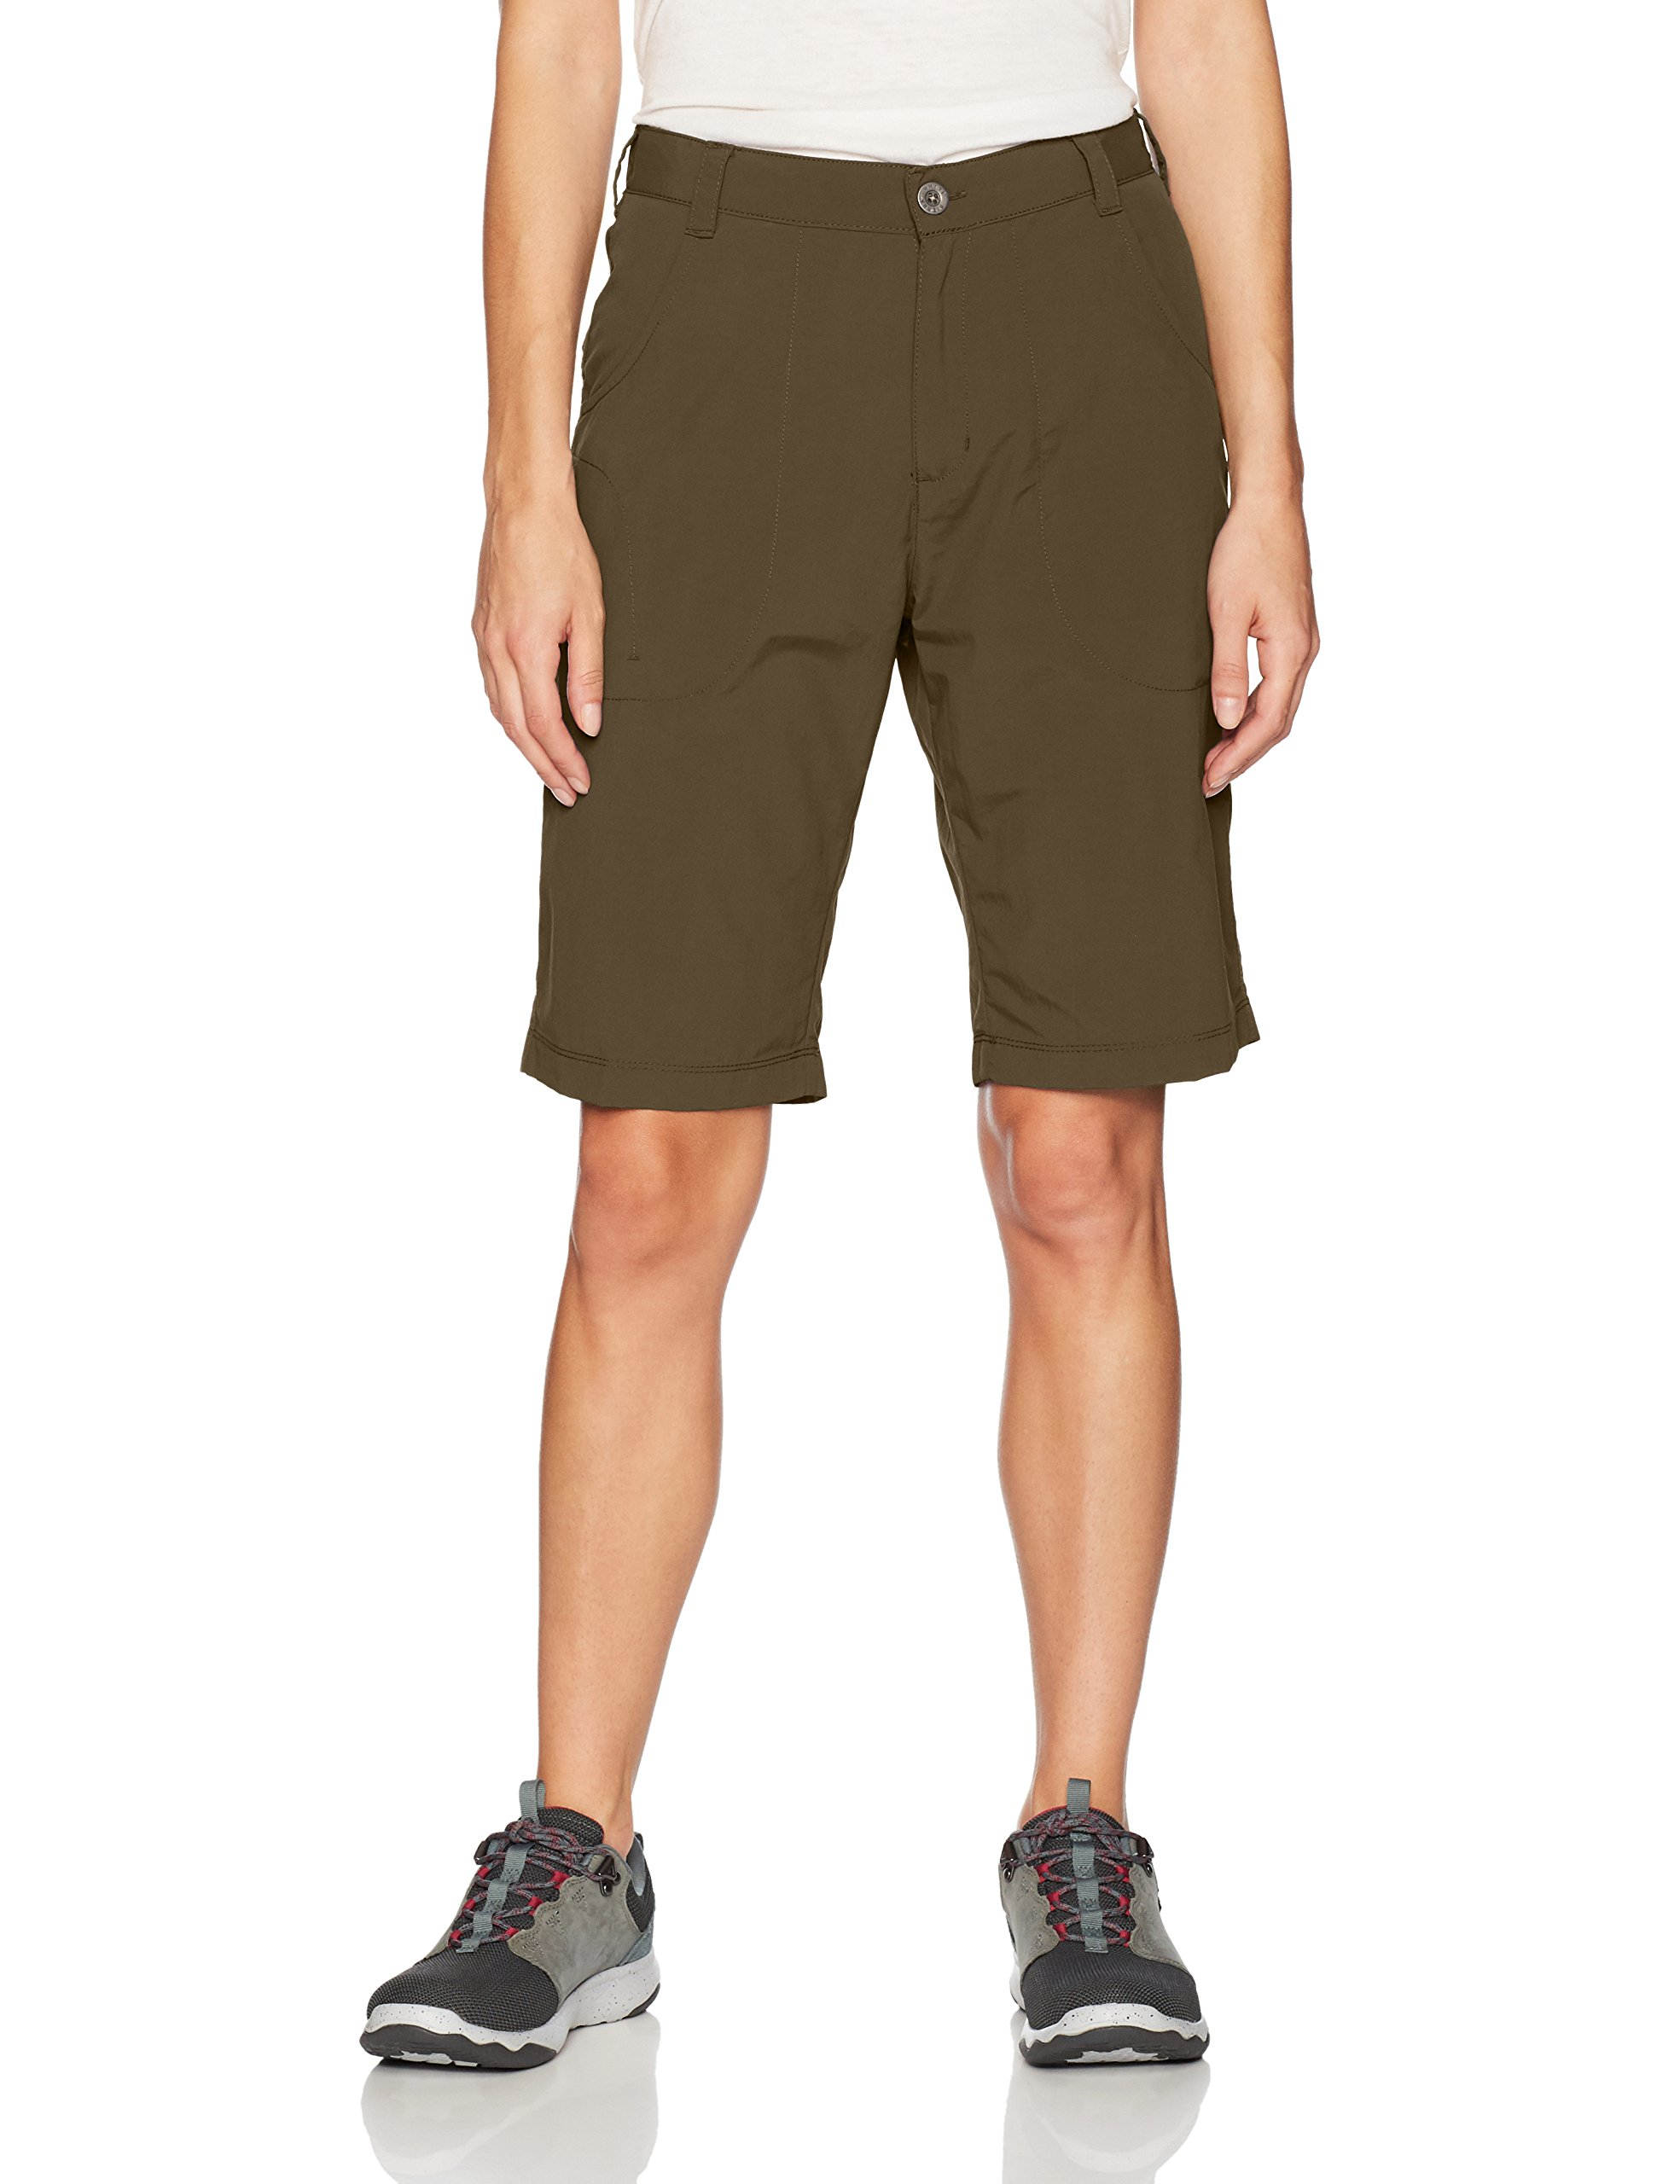 White Sierra Pt. Shorts, Bark, Small